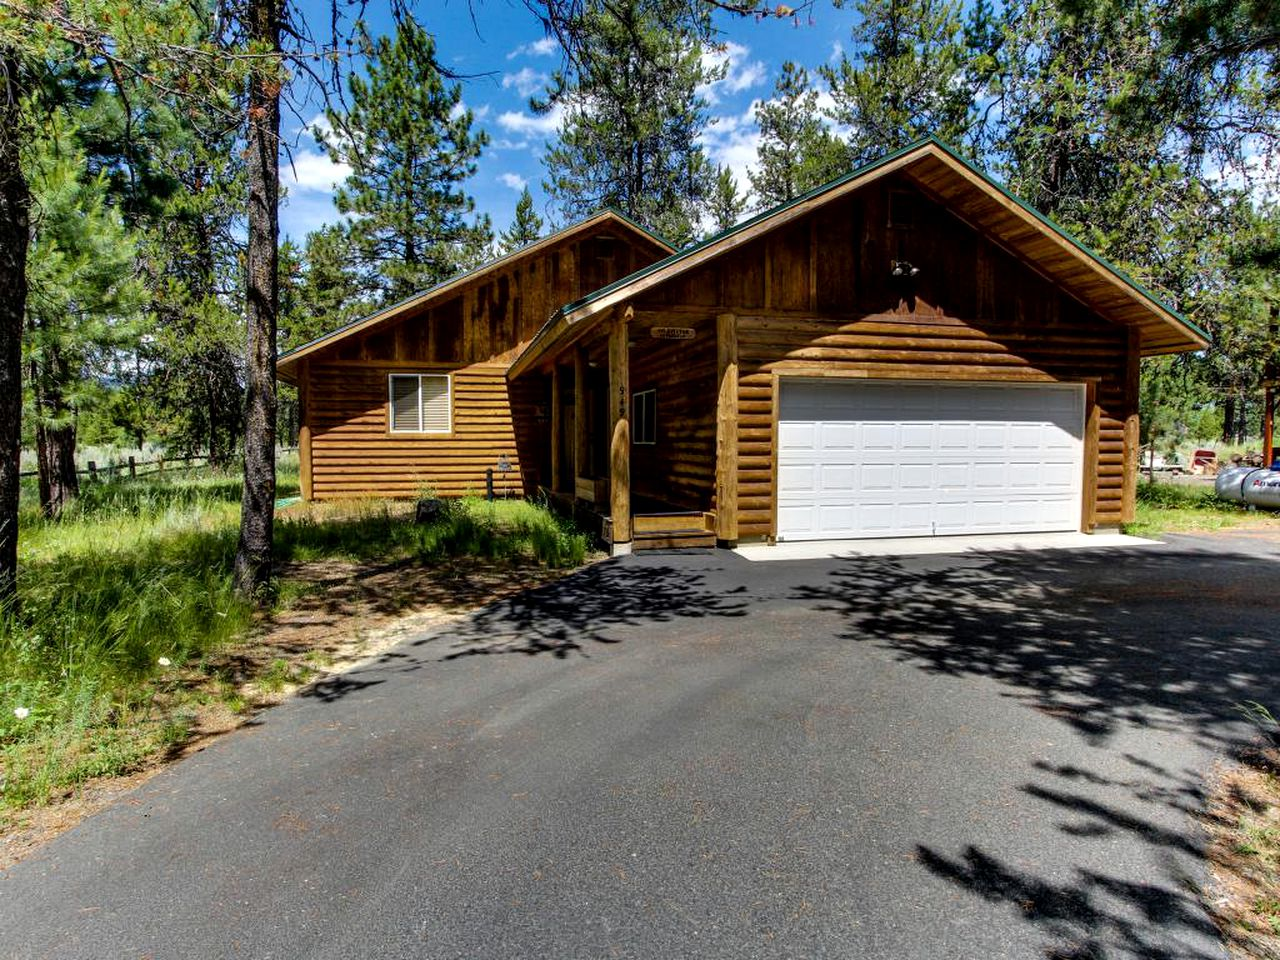 Cabins (McCall, Idaho, United States)